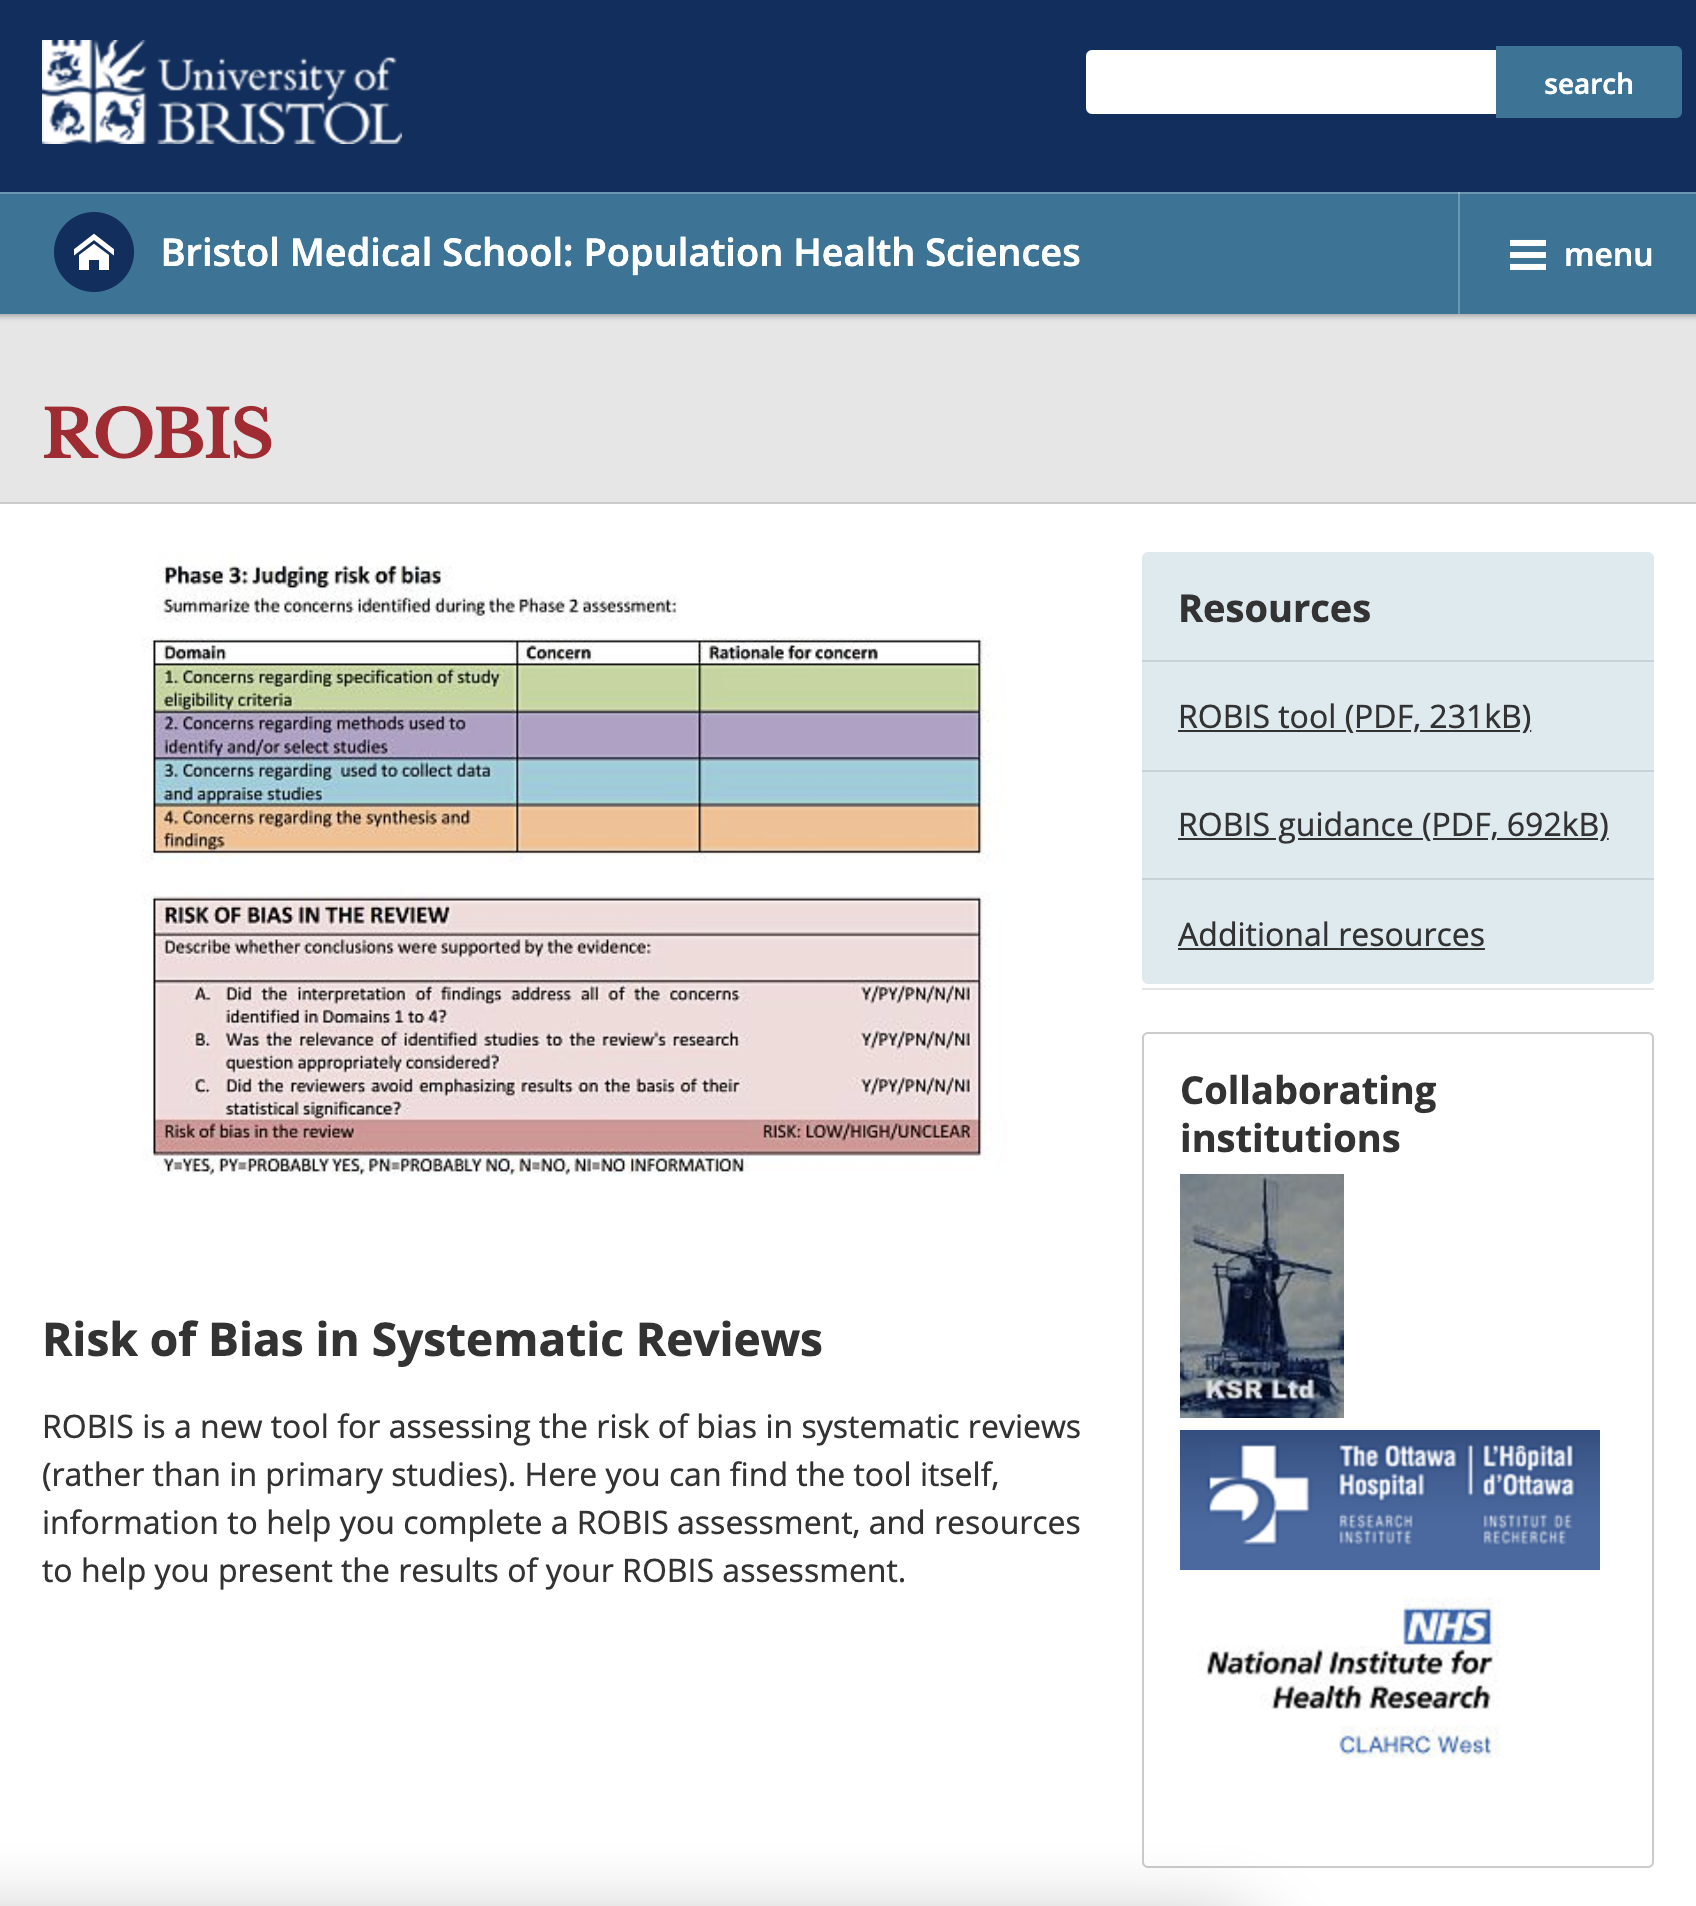 A Risk of Bias Assessment Tool for Systematic Reviews (ROBIS)